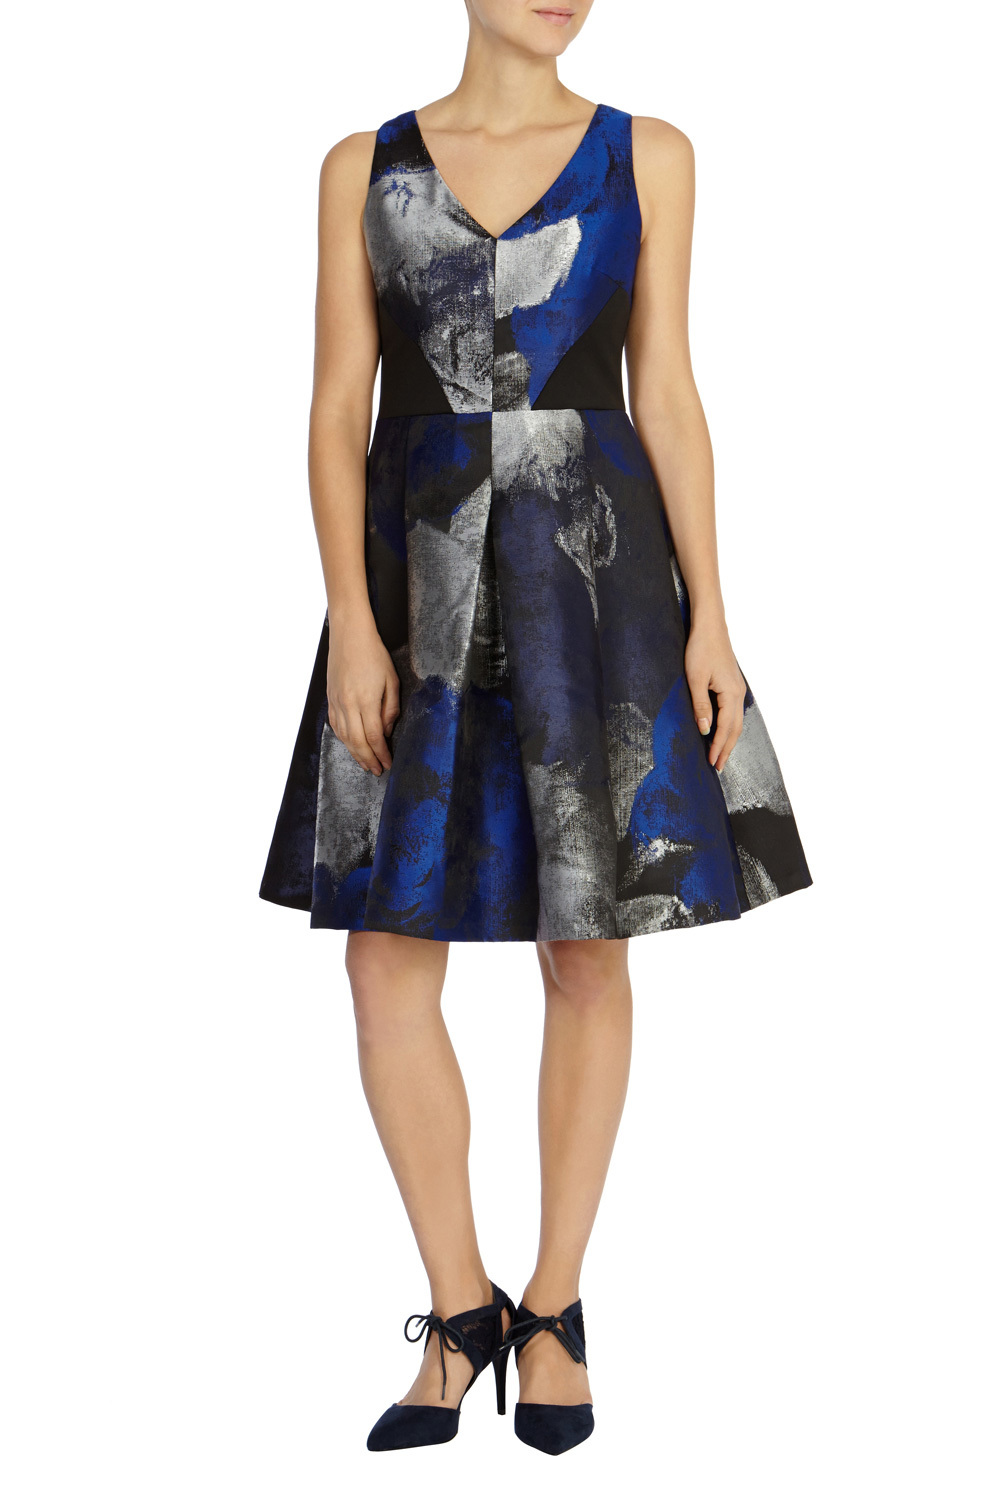 Tahlia Jacquard Dress - style: faux wrap/wrap; neckline: low v-neck; sleeve style: sleeveless; secondary colour: royal blue; predominant colour: black; occasions: evening, occasion; length: on the knee; fit: fitted at waist & bust; fibres: polyester/polyamide - 100%; sleeve length: sleeveless; texture group: structured shiny - satin/tafetta/silk etc.; pattern type: fabric; pattern size: light/subtle; pattern: patterned/print; season: s/s 2016